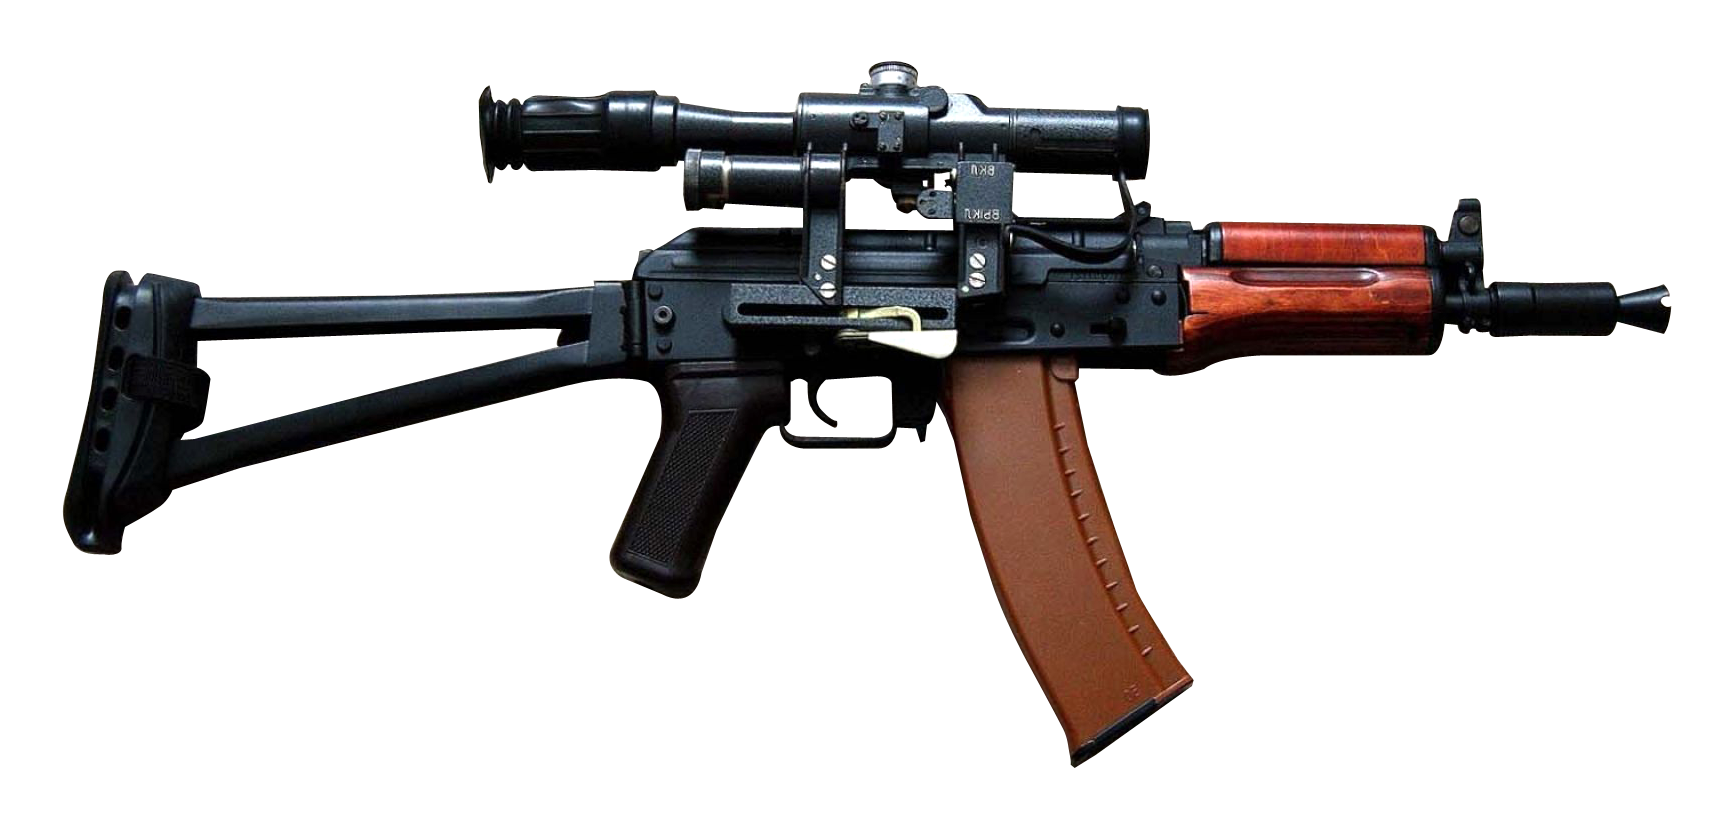 Assault Rifle Gun PNG Transparent Image - Gun PNG